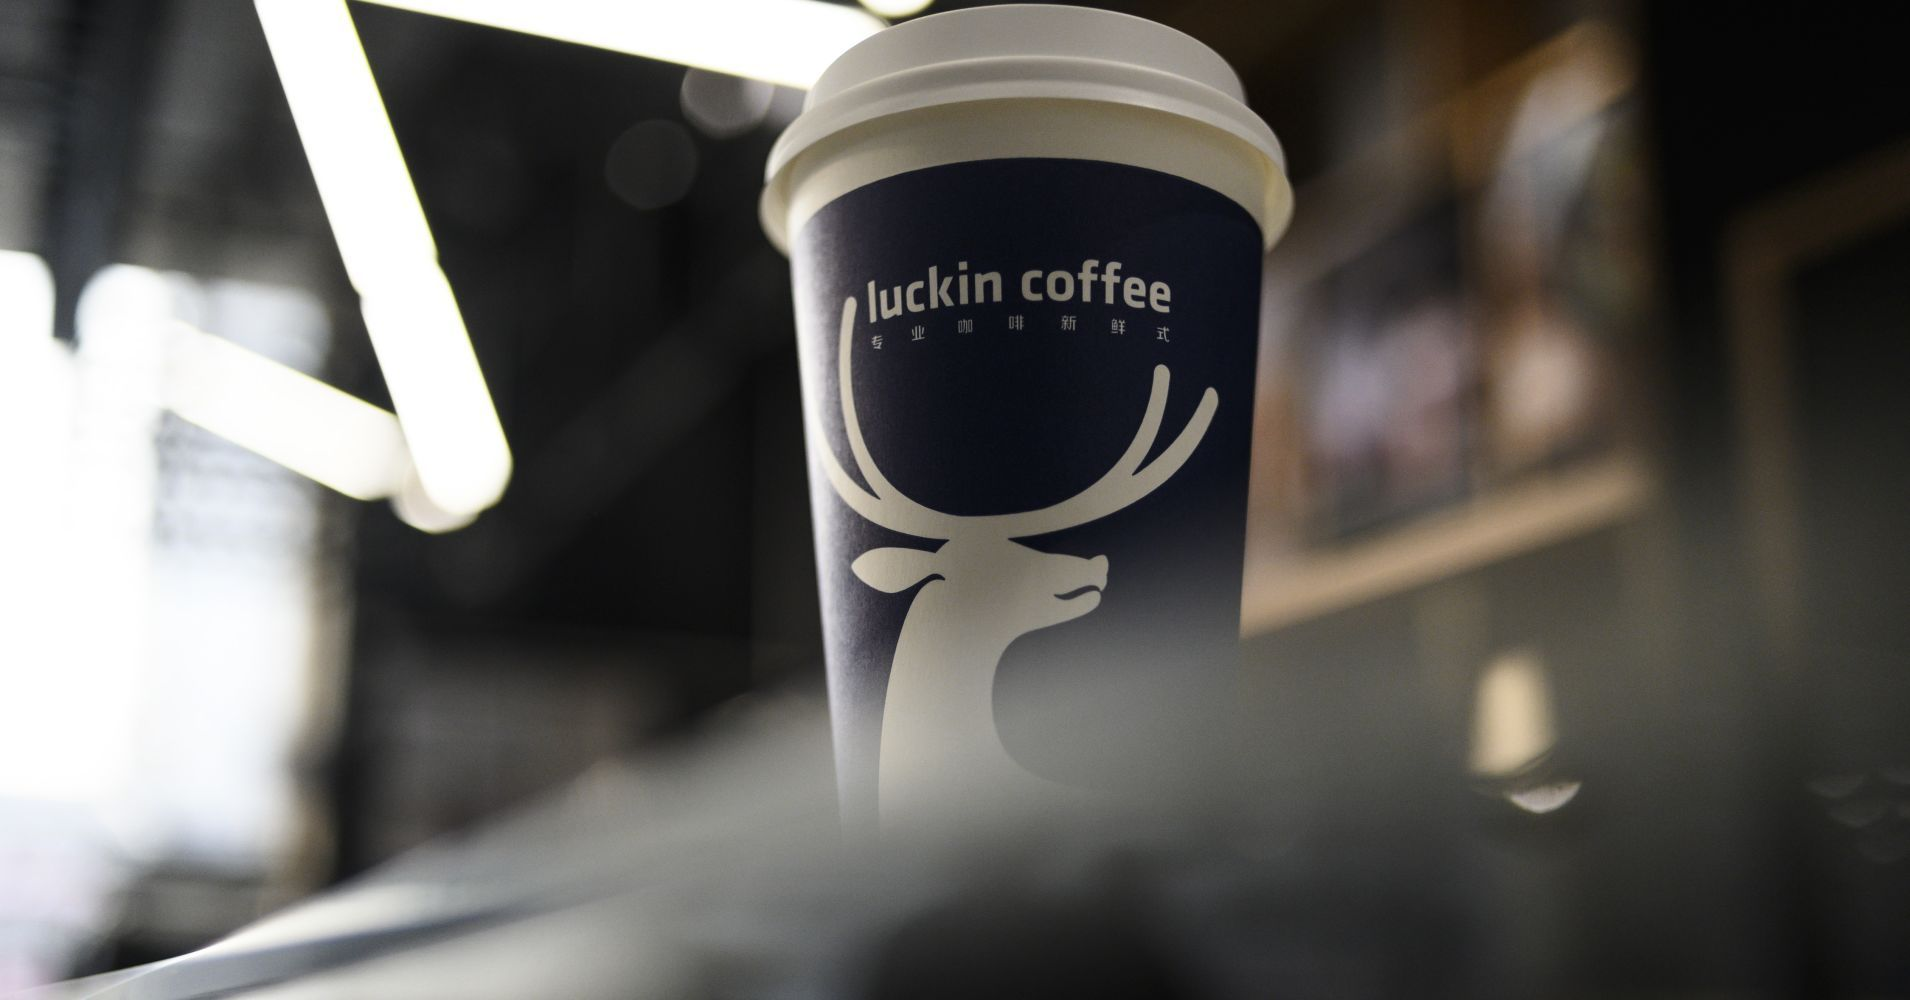 China's Luckin Coffee raises 150 million in funding from